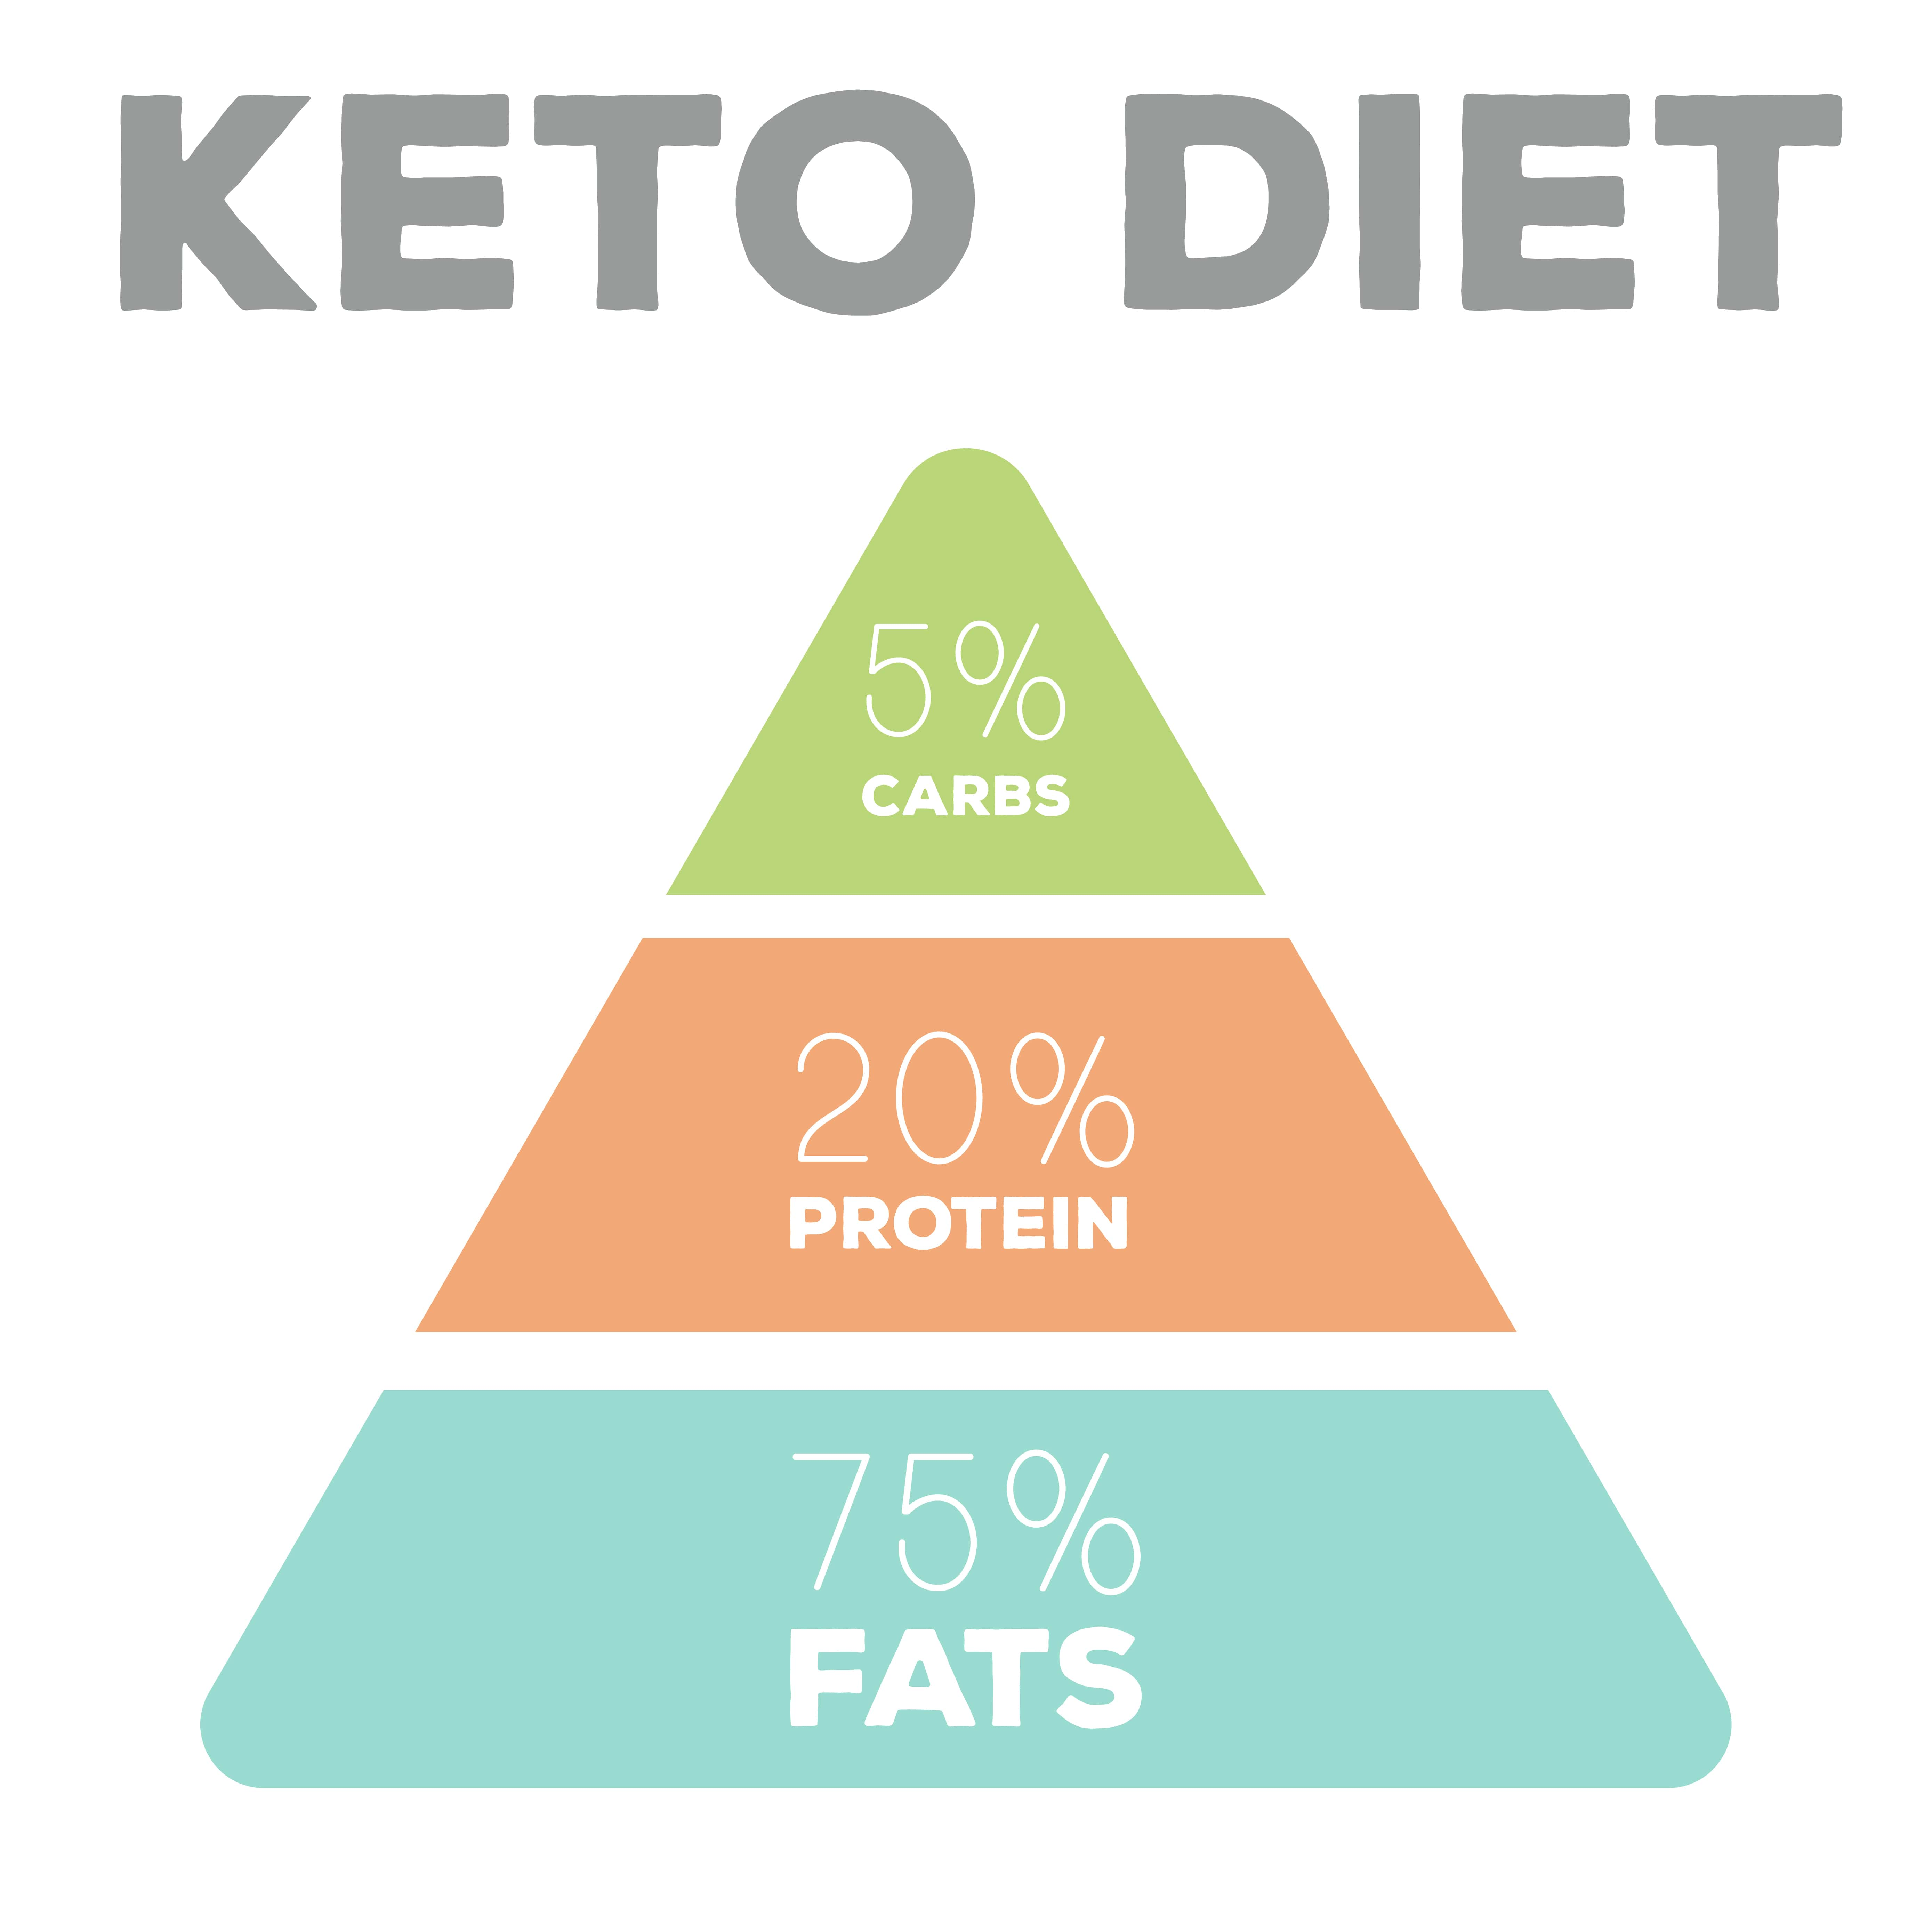 OneShare Health Blog Presents Healthy Keto Diet to Lose Weight